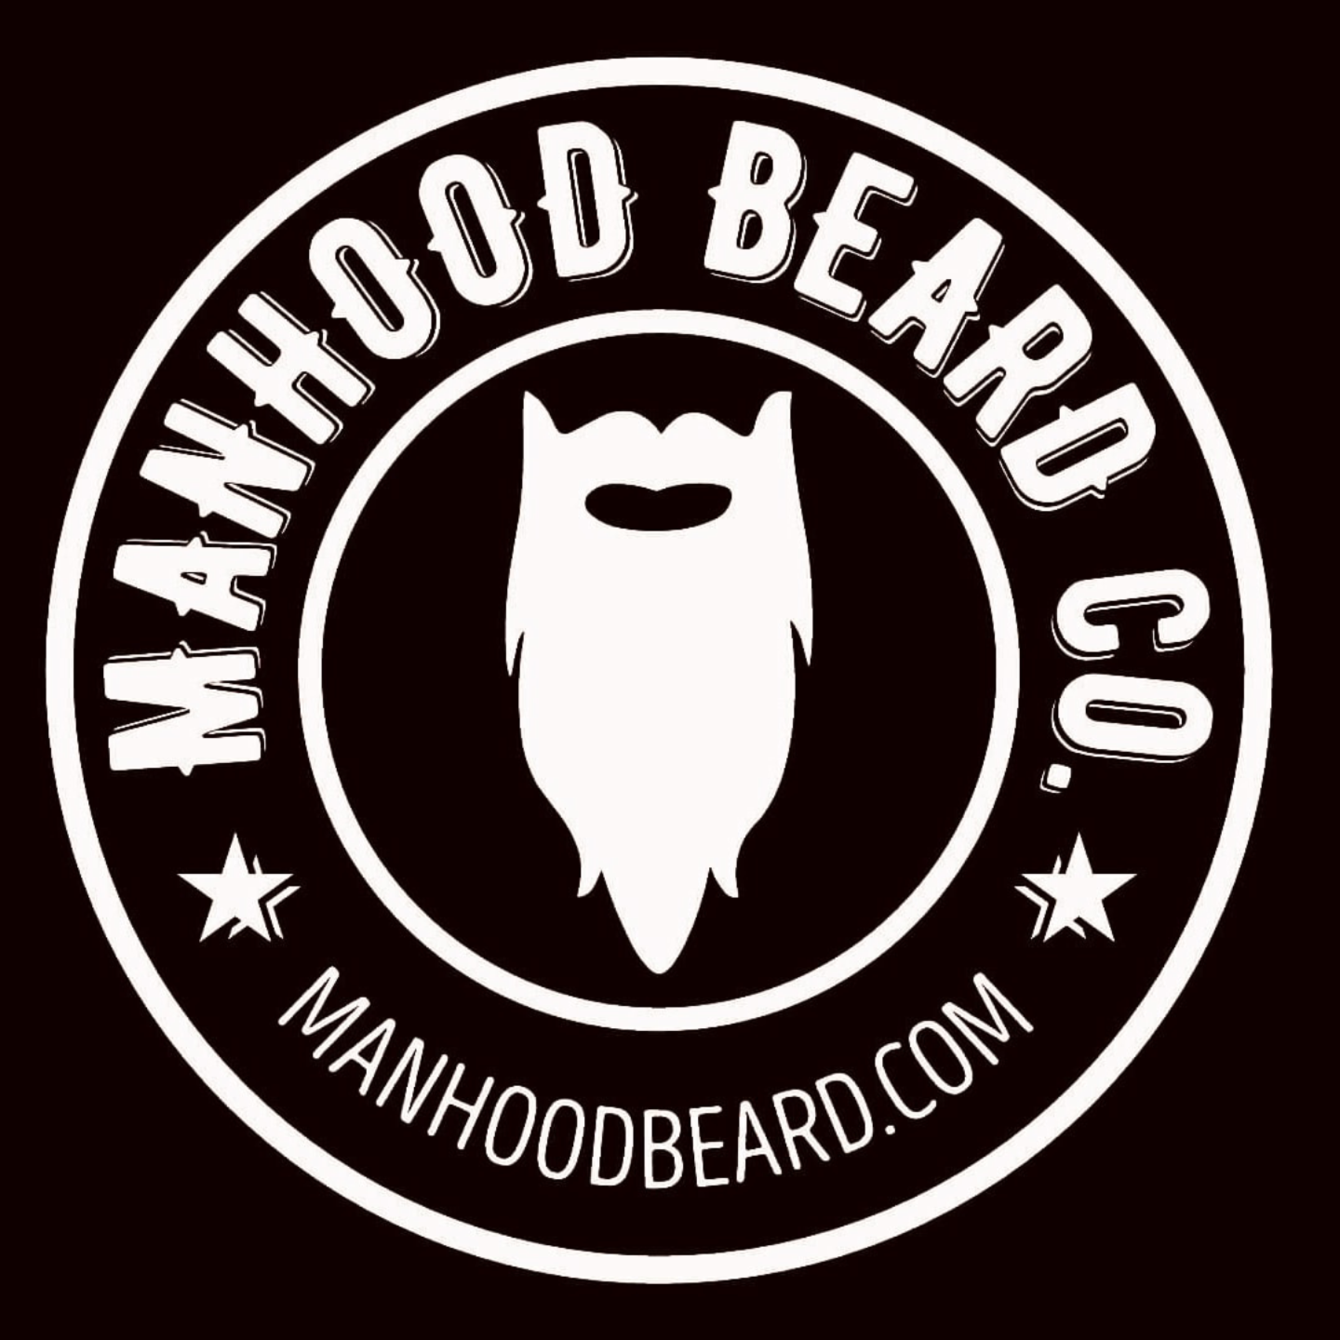 Manhood Beard Co.